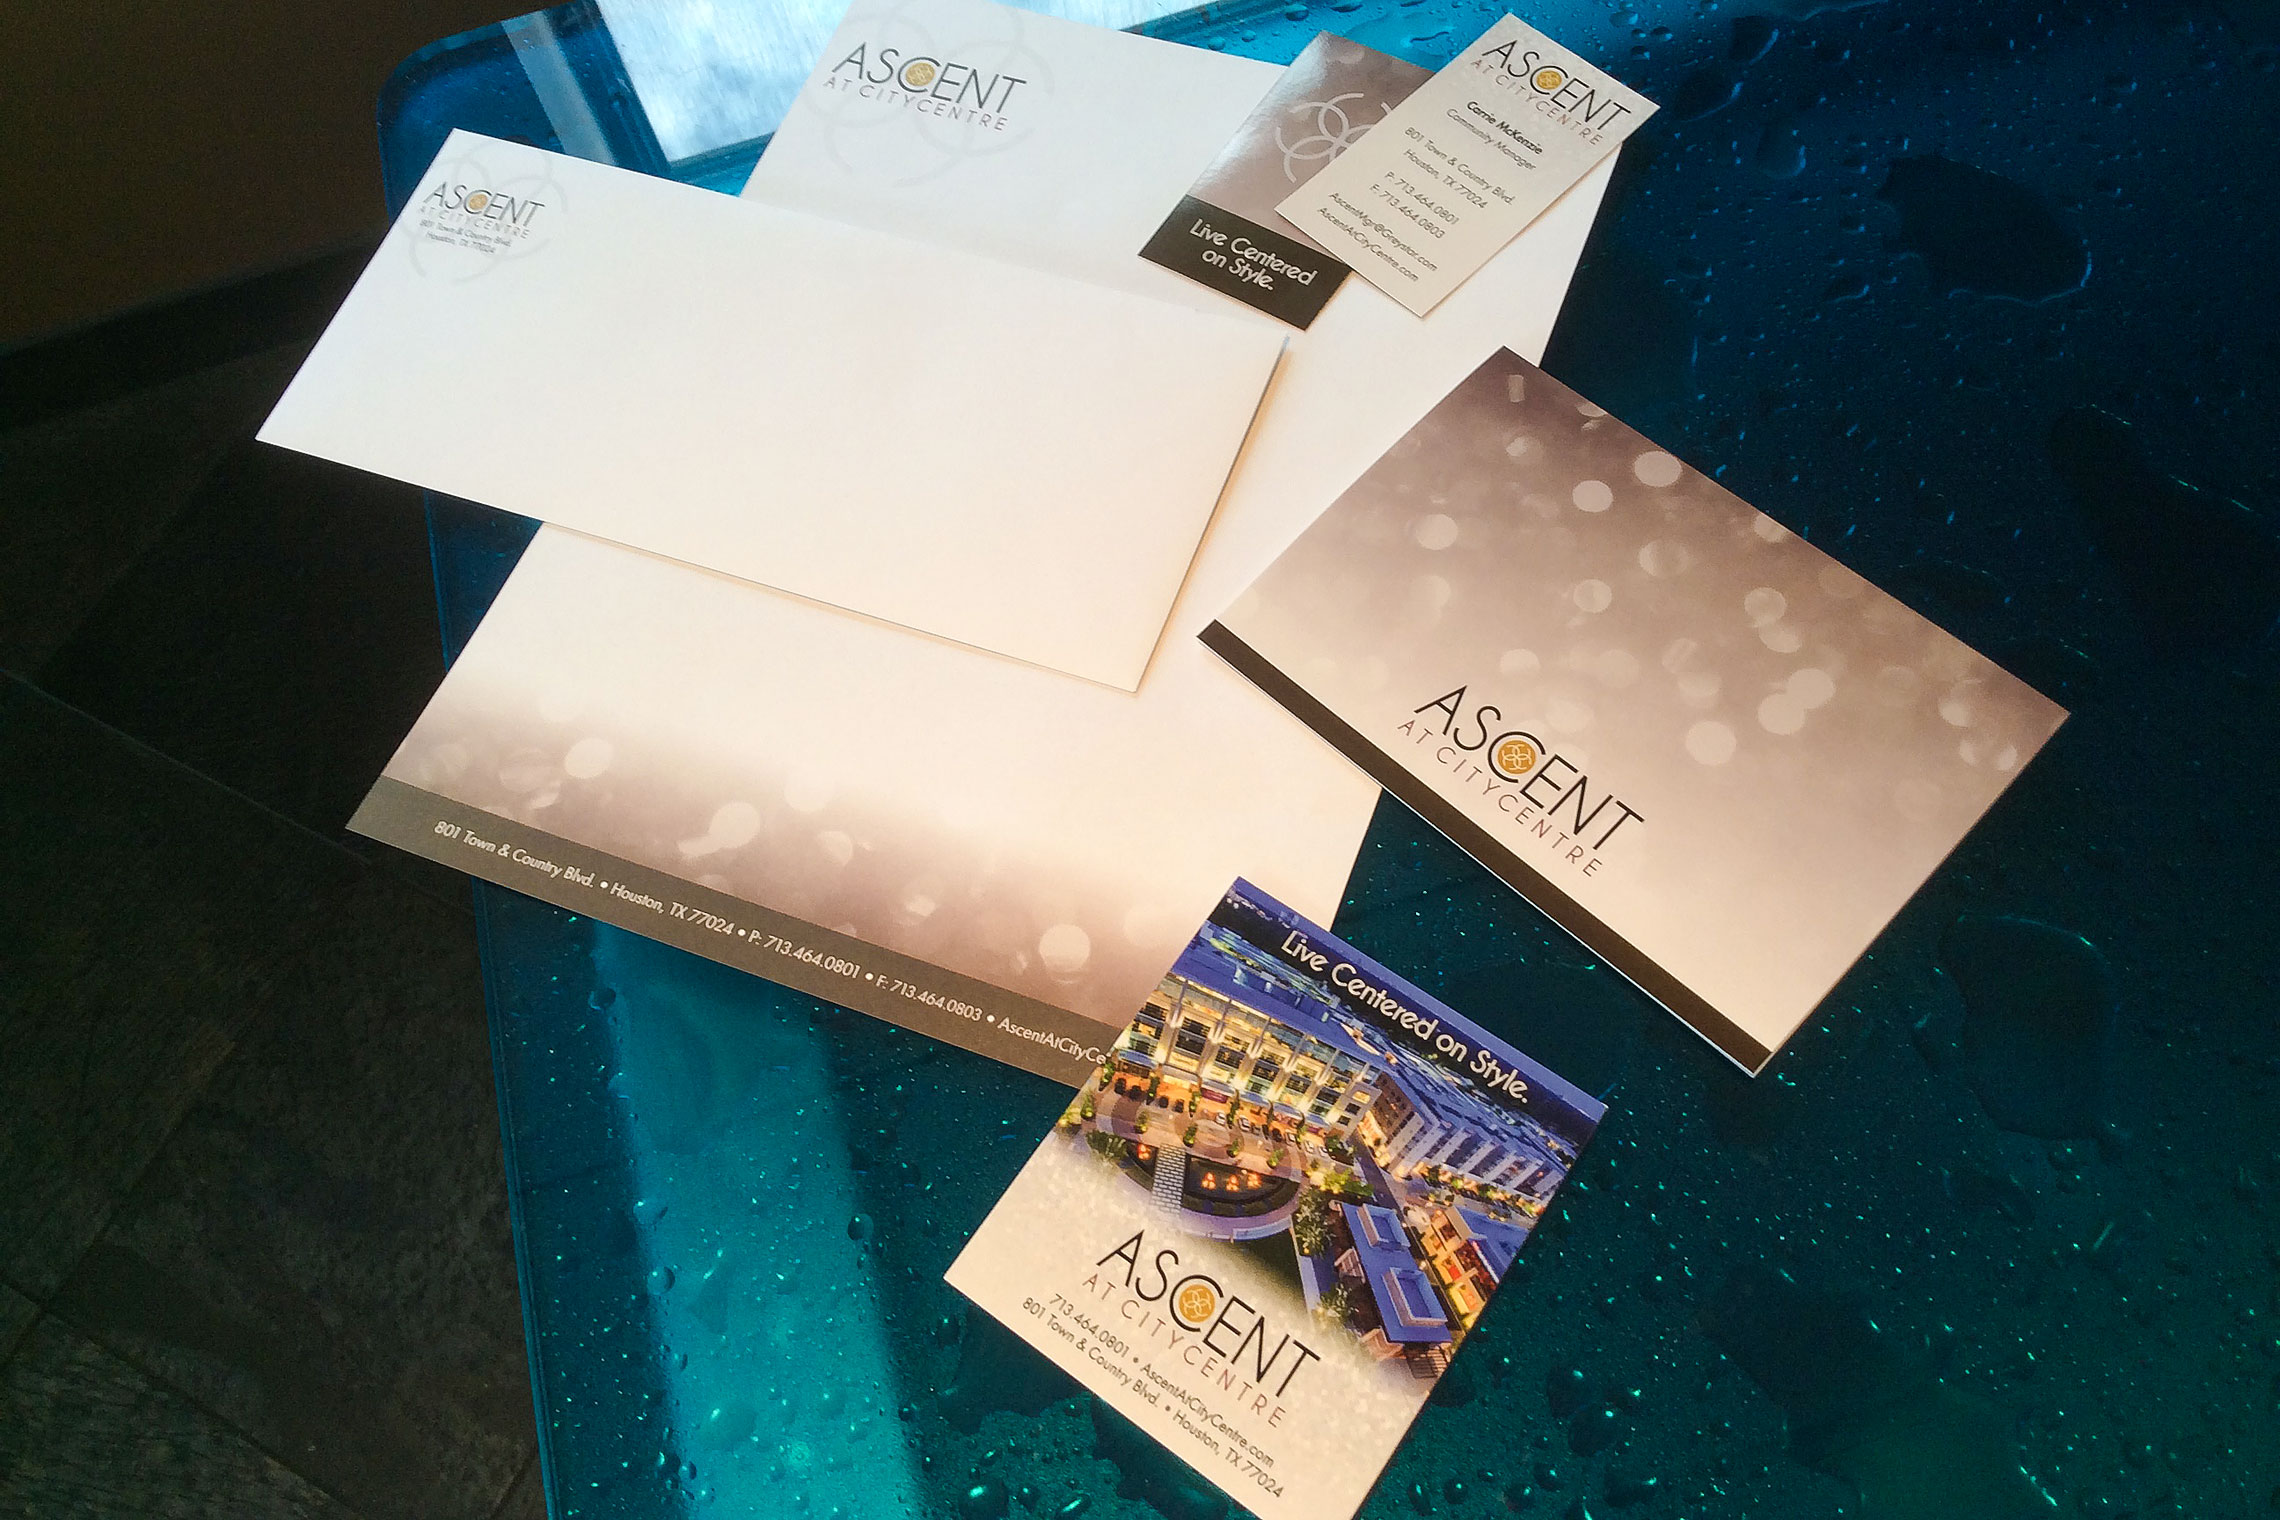 Ascent at CITYCENTRE Collateral - Amenity Fold-Out, Promo Card, Business Card, Letterhead and Envelope